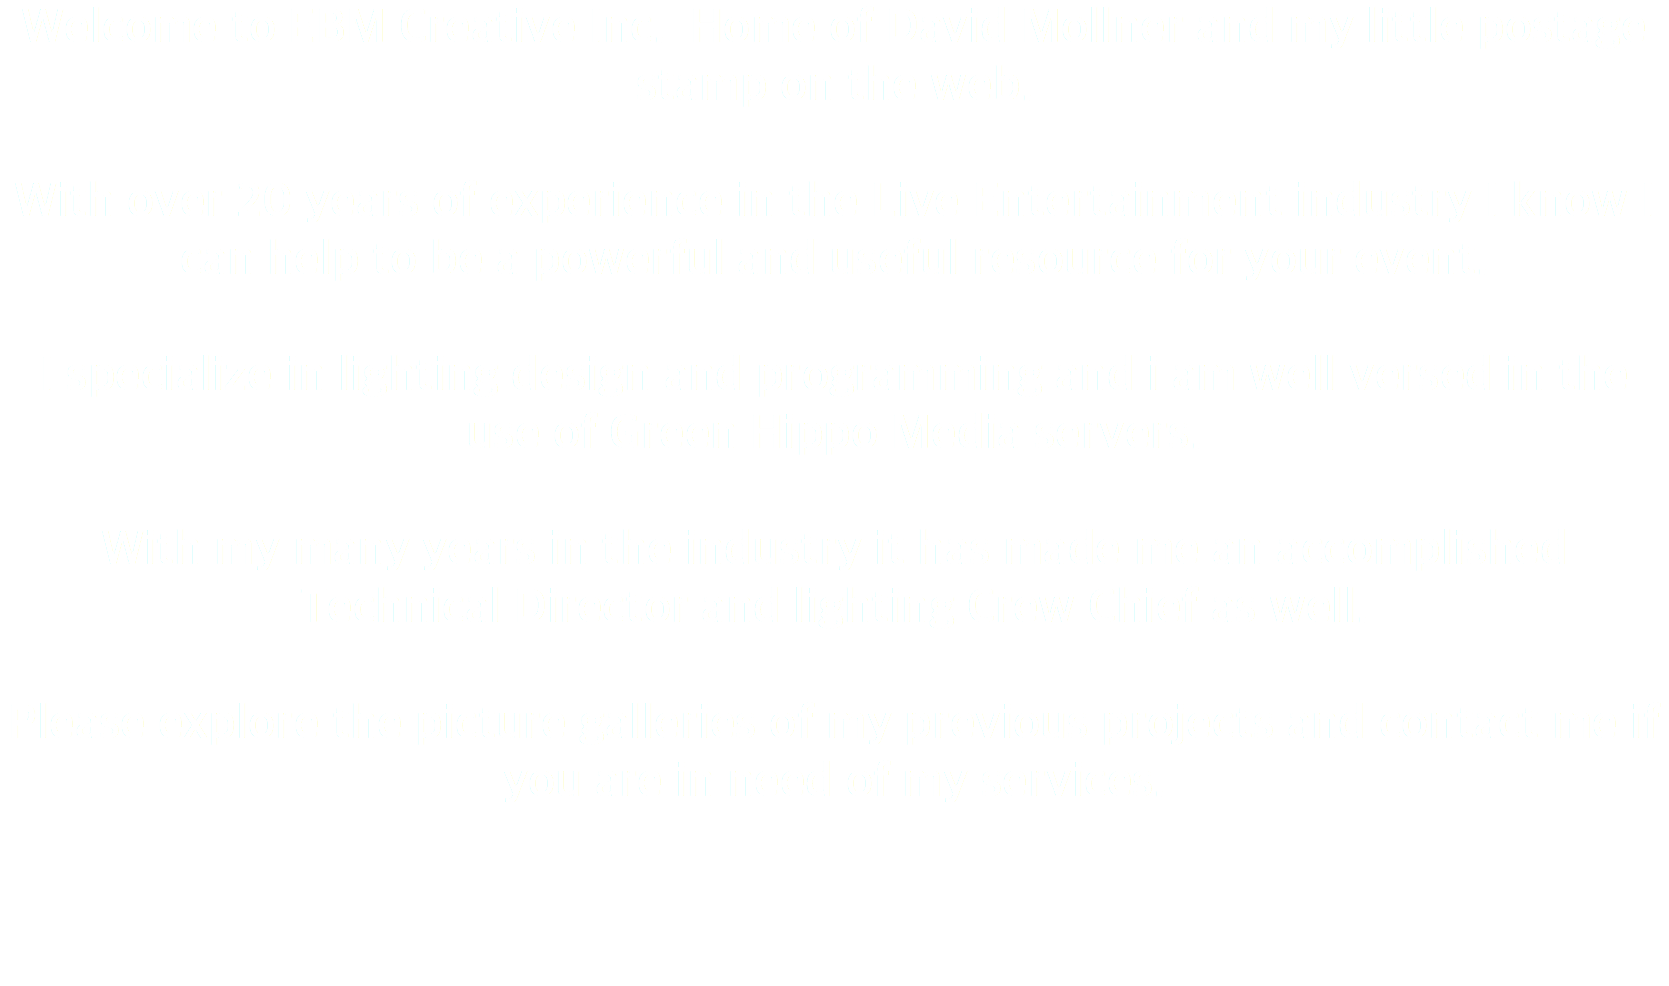 Welcome to EBM Creative Inc. Home of David Mollner and my little postage stamp on the web. With over 20 years of experience in the Live Entertainment industry I know I can help to be a powerful and useful resource for your event. I specialize in lighting design and programming and i am well versed in the use of Green Hippo Media servers. With my many years in the industry it has made me an accomplished Technical Director and lighting Crew Chief as well. Please explore the picture galleries of my previous projects and contact me if you are in need of my services.